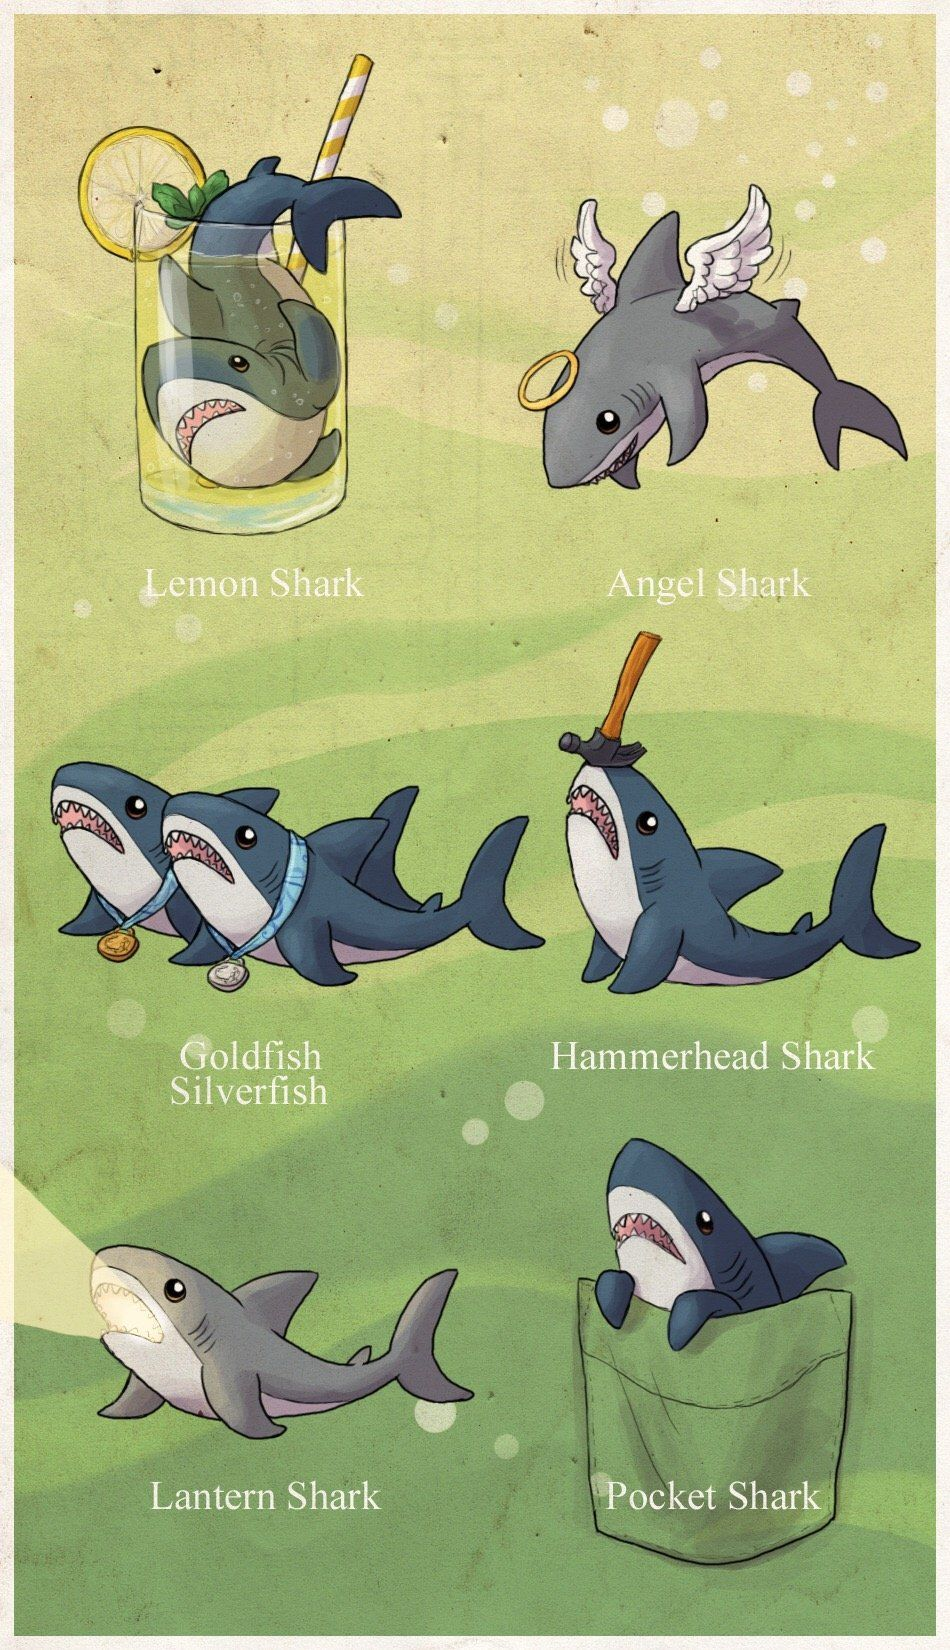 ff0c1d2f7 Pin by Sarah on Animals in 2019 | Cute shark, Funny, Cute Animals